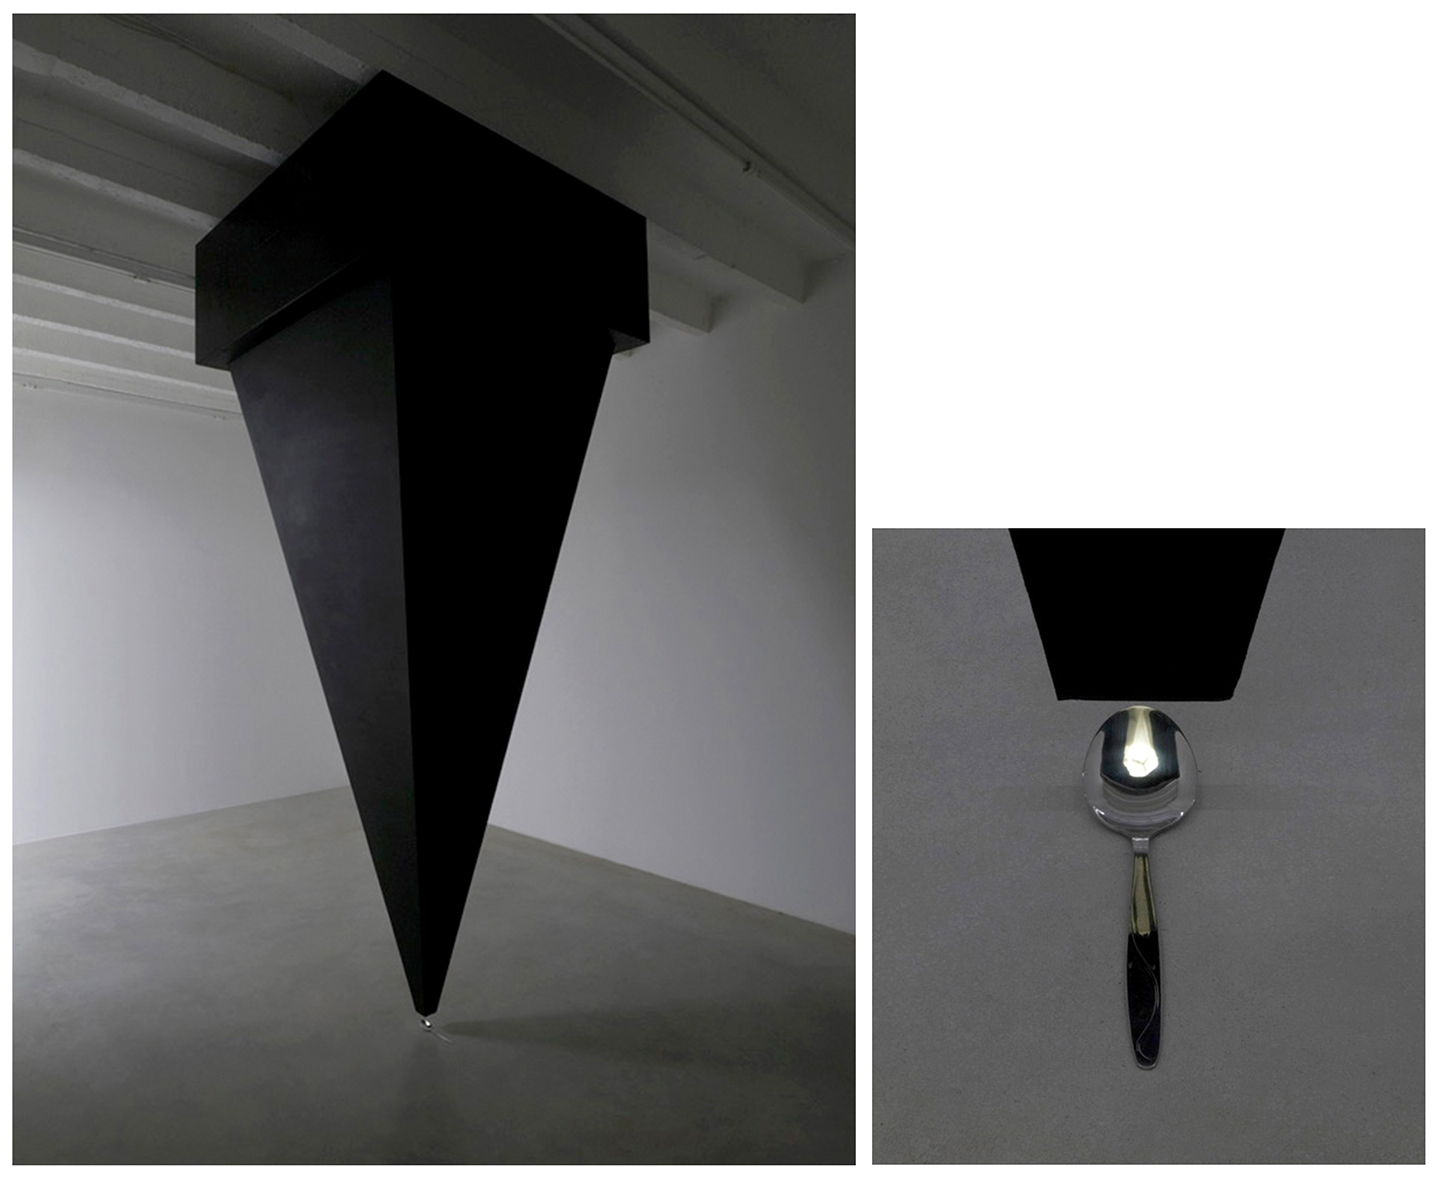 Pre-projection, 2008; Detail; silver spoon, plywood, paint, LEDs, ceiling fan, ca. 350 x 120 x 120 cm. Installation view, Galerija Gregor Podnar, Berlin. Photo: Marcius Schneider